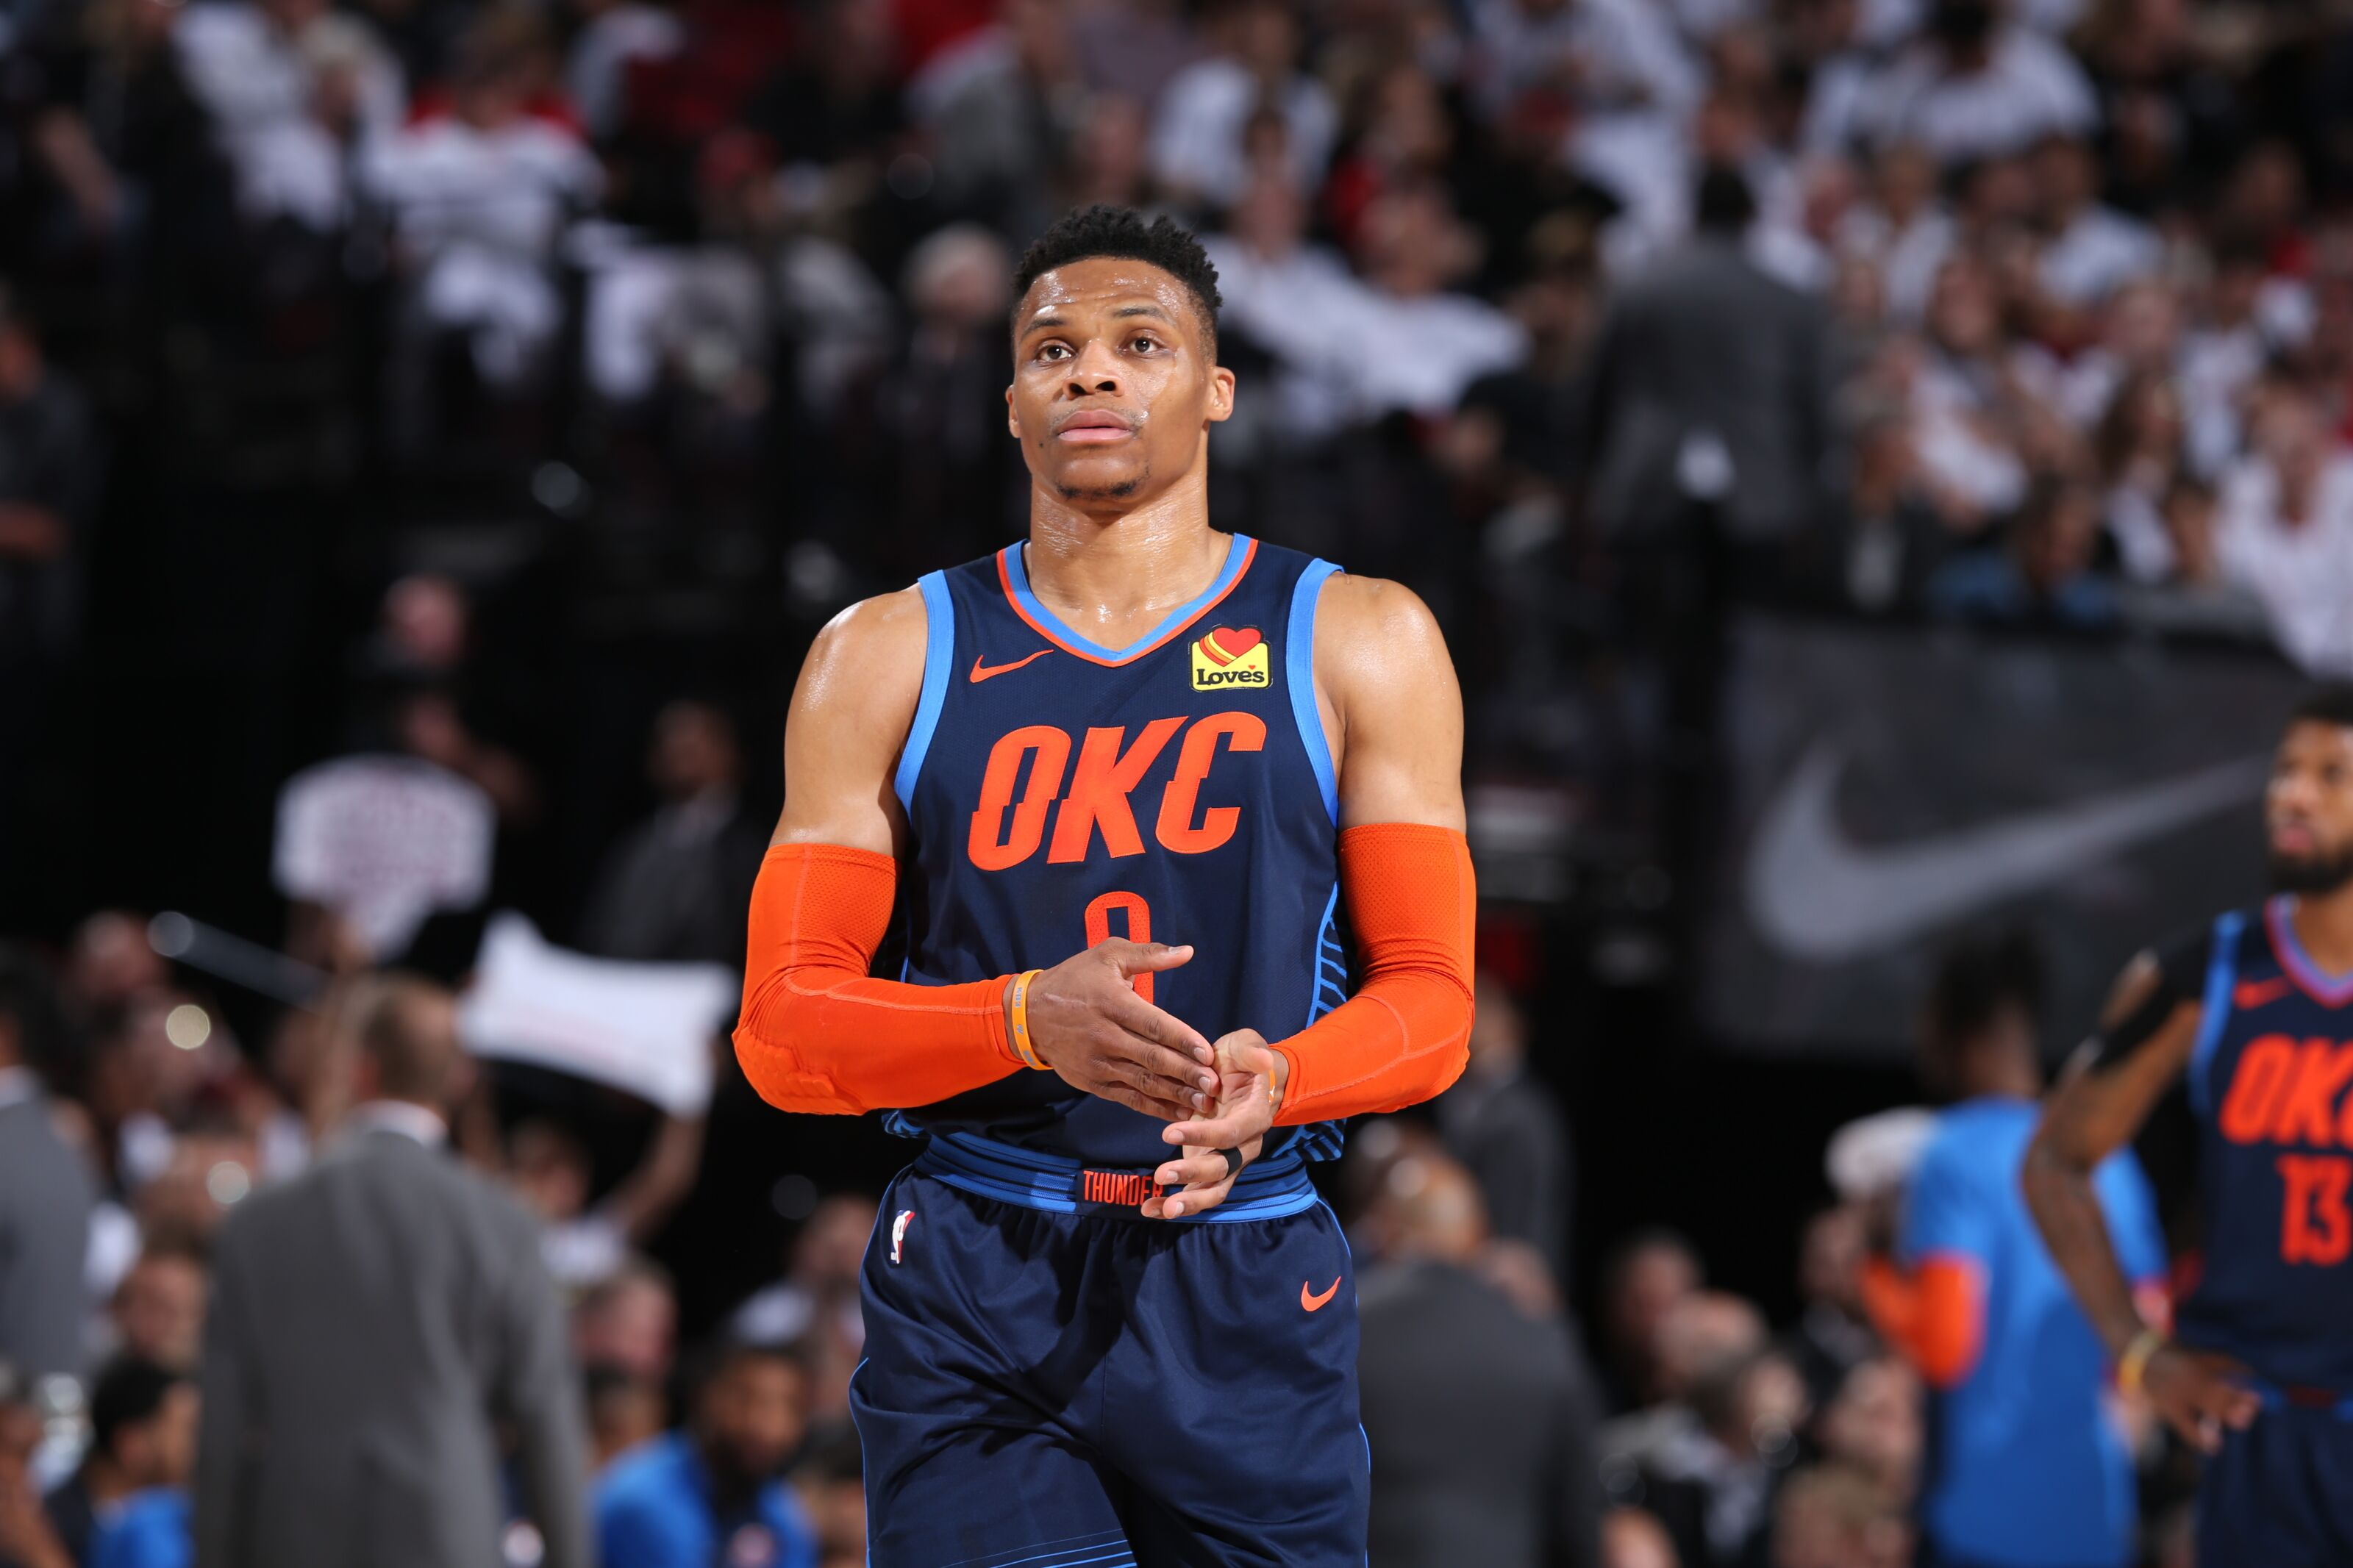 Is OKC Thunder superstar Russell Westbrook on the back end of his career?